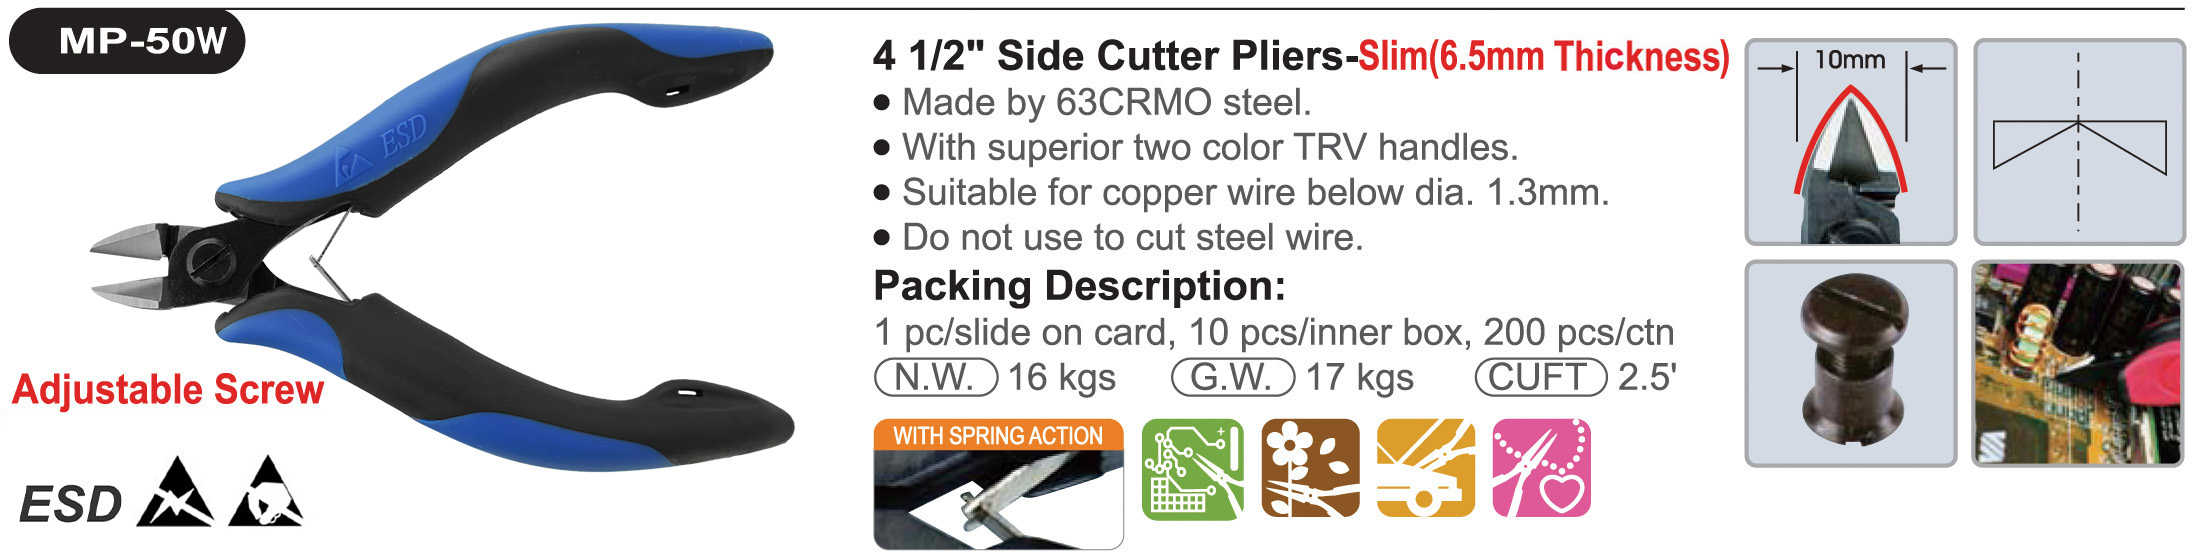 proimages/product/pliers/cutting_pliers/Precision_Electronics_Diagonal_Cutters/MP-50W/MP-50W_03.jpg